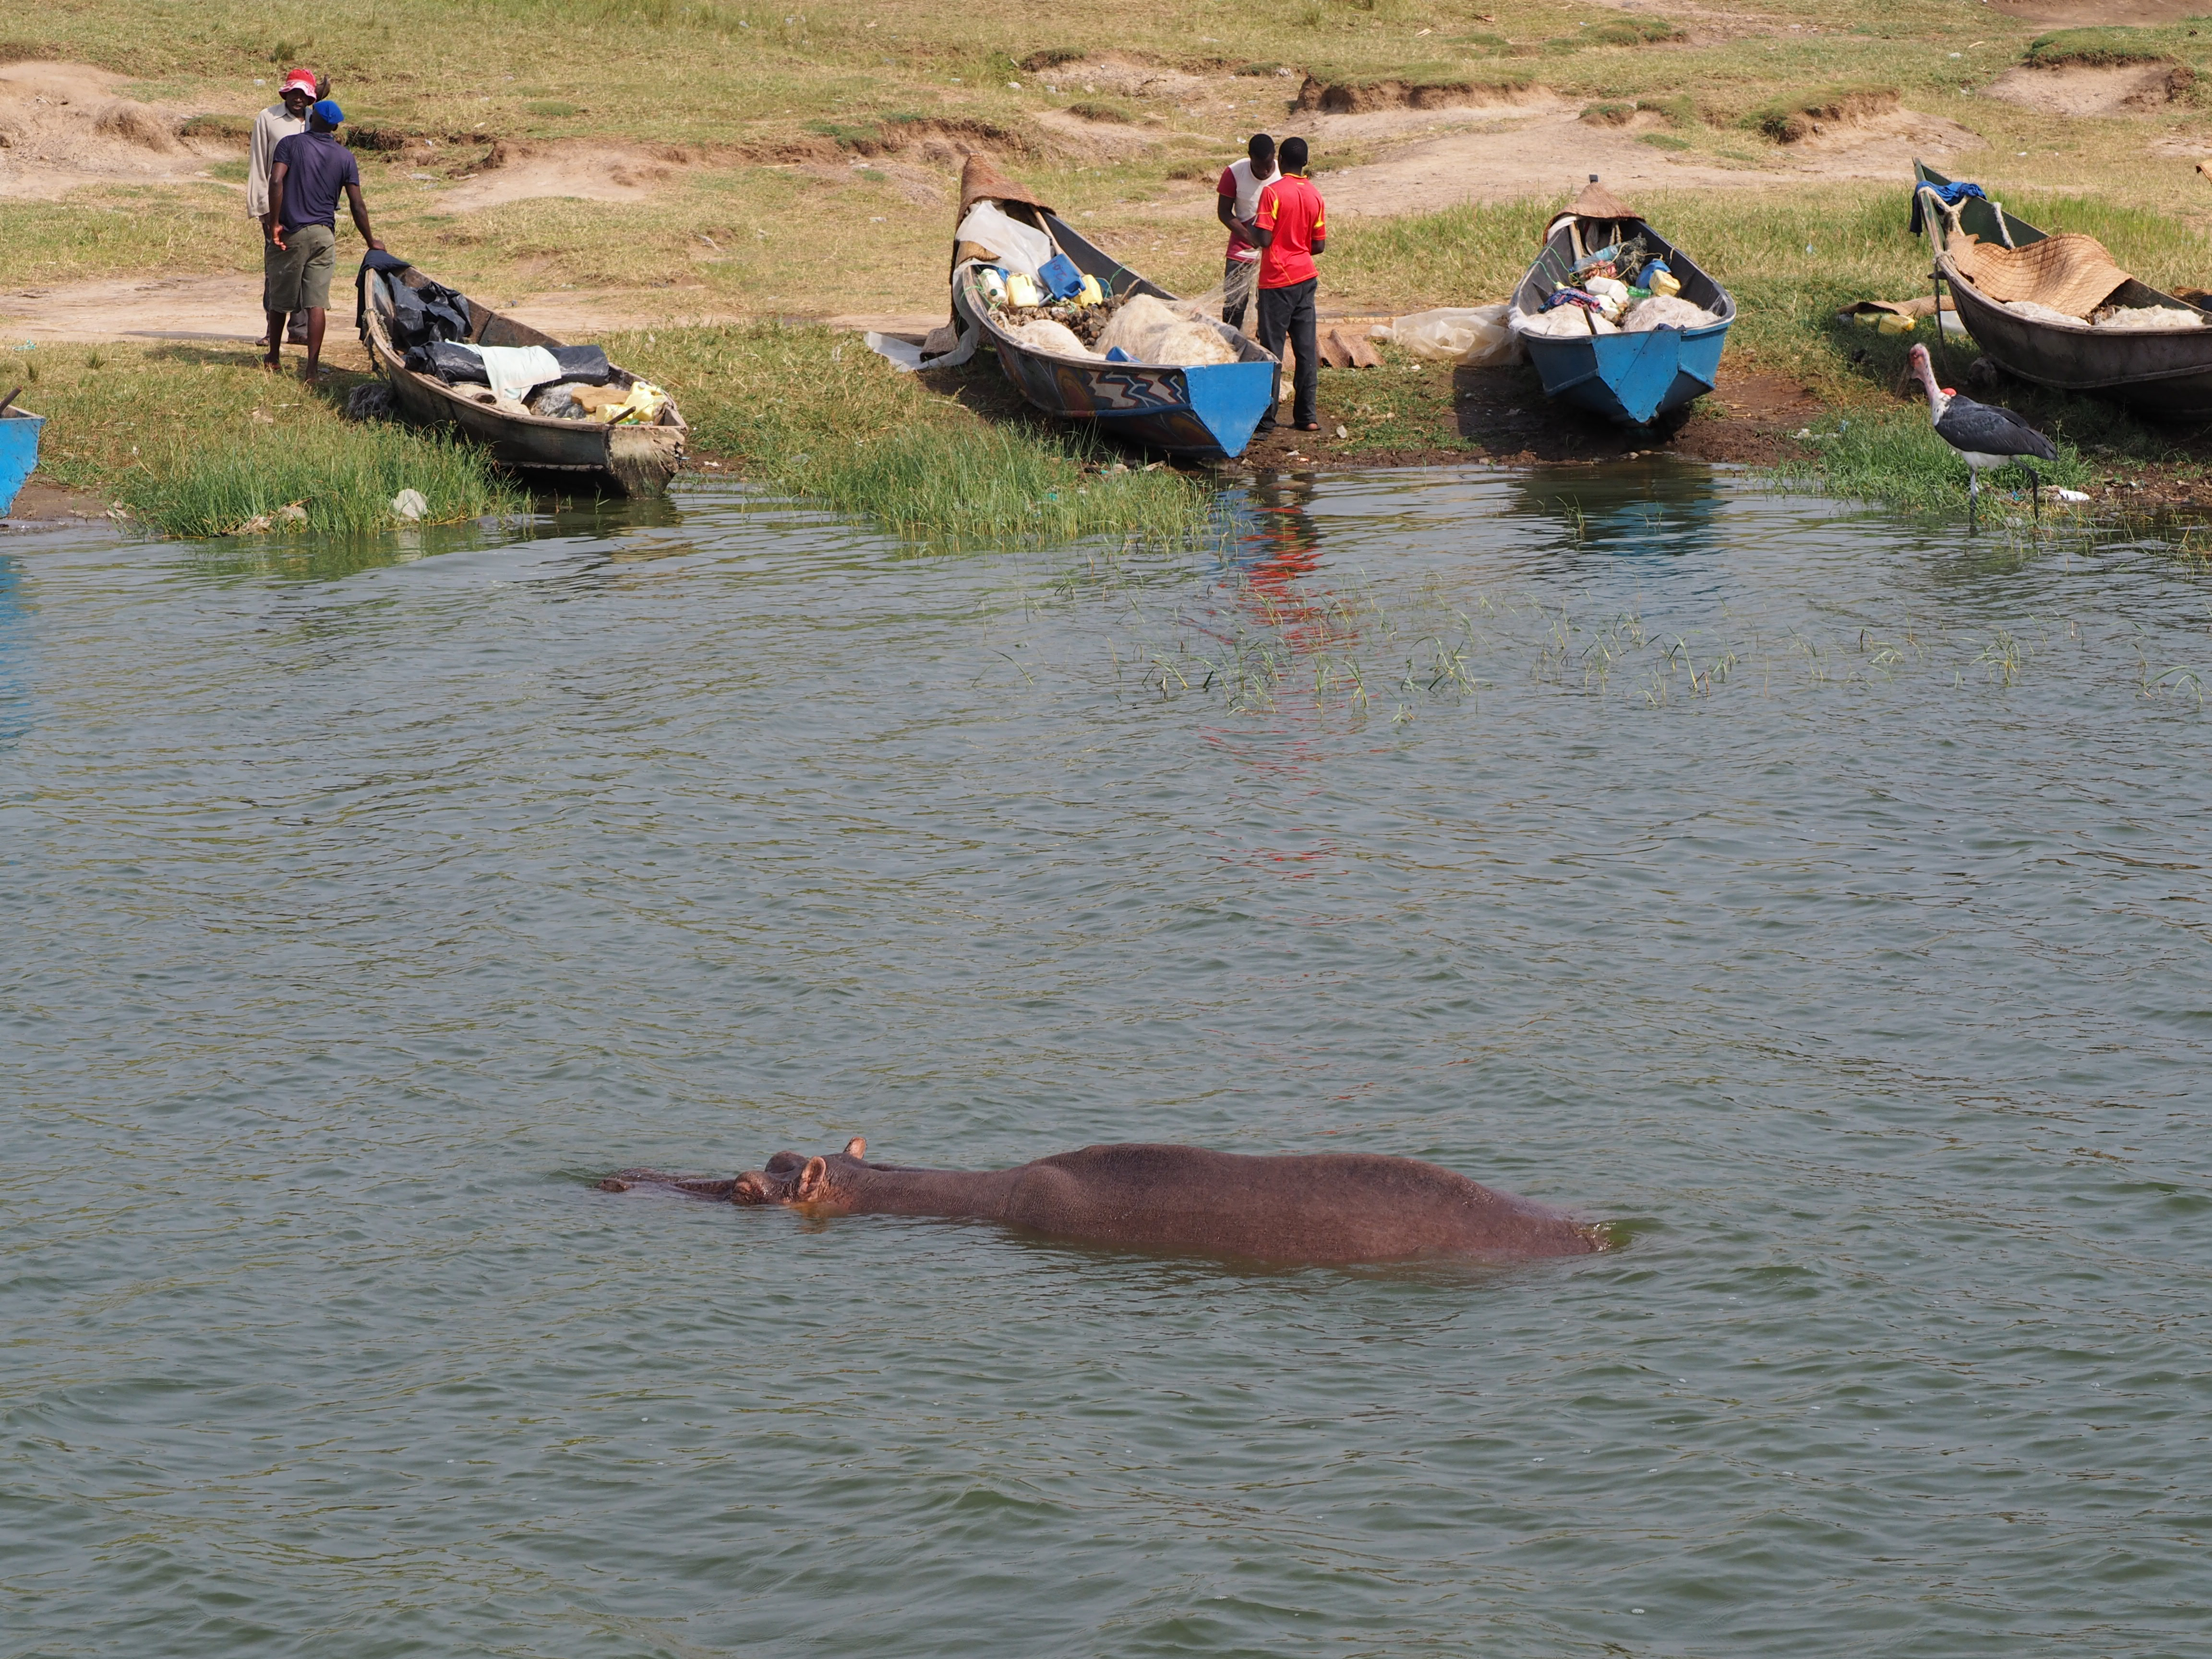 Local fisherman not intimidated by the hippos in southwestern Uganda